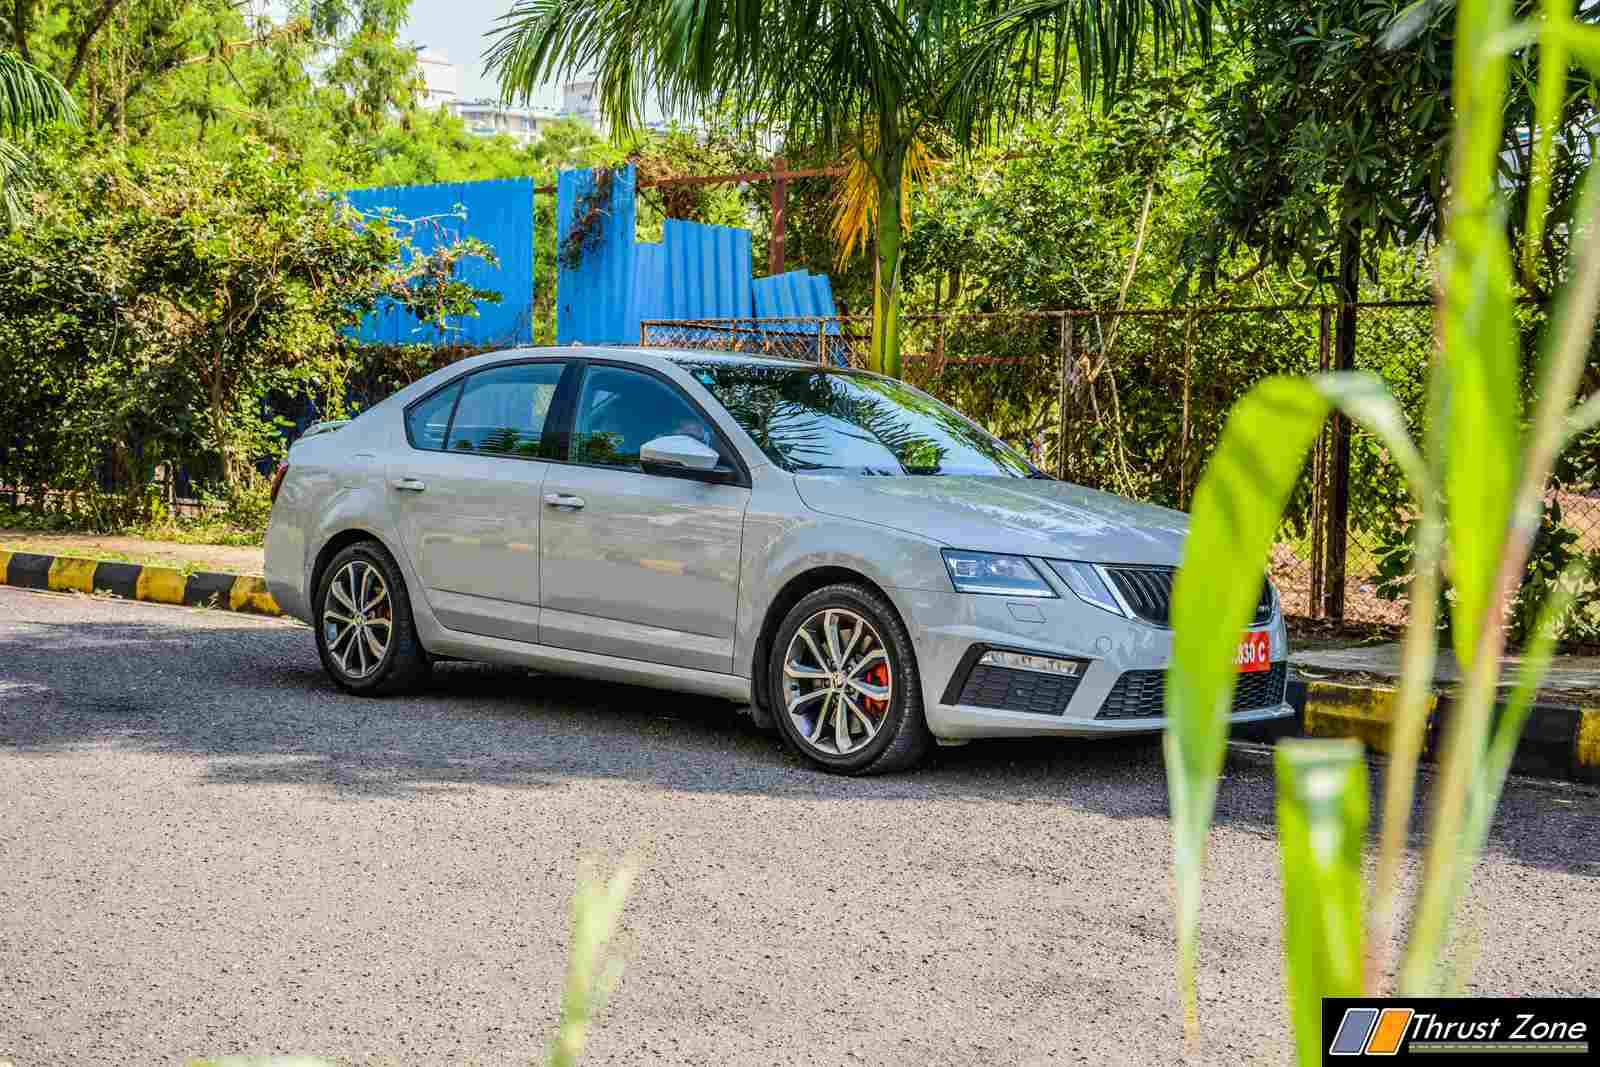 https://www.thrustzone.com/wp-content/uploads/2017/10/Skoda-Octavia-RS-230-India-Review-26.jpg